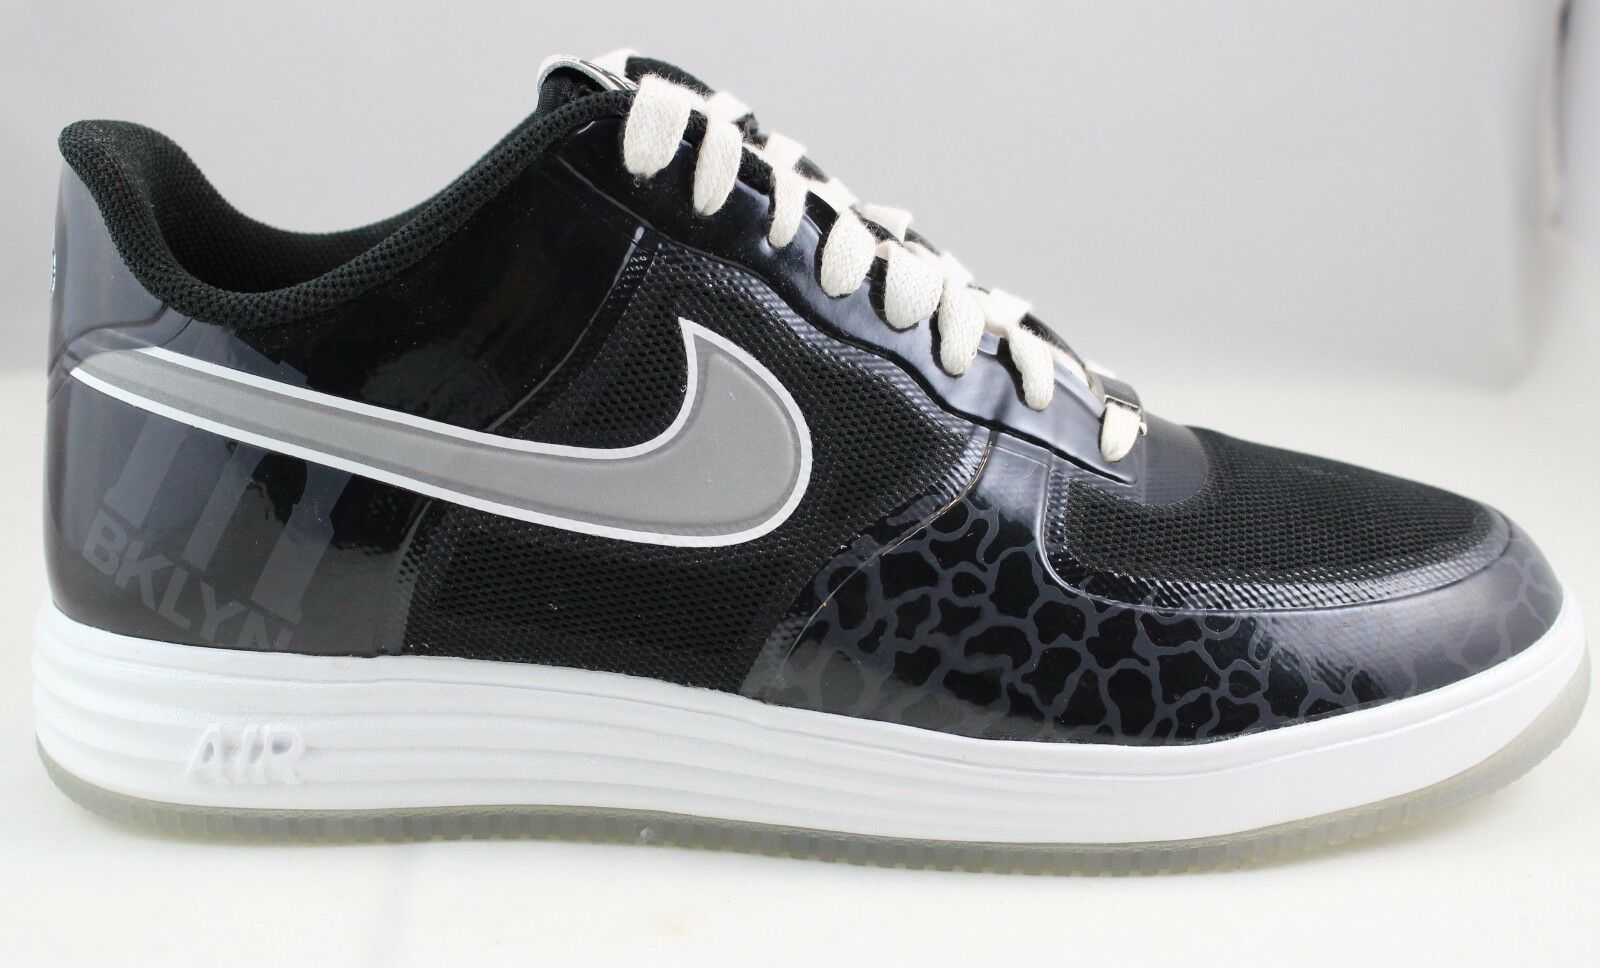 Nike Lunar Force 1 Hyperfuse City Pack